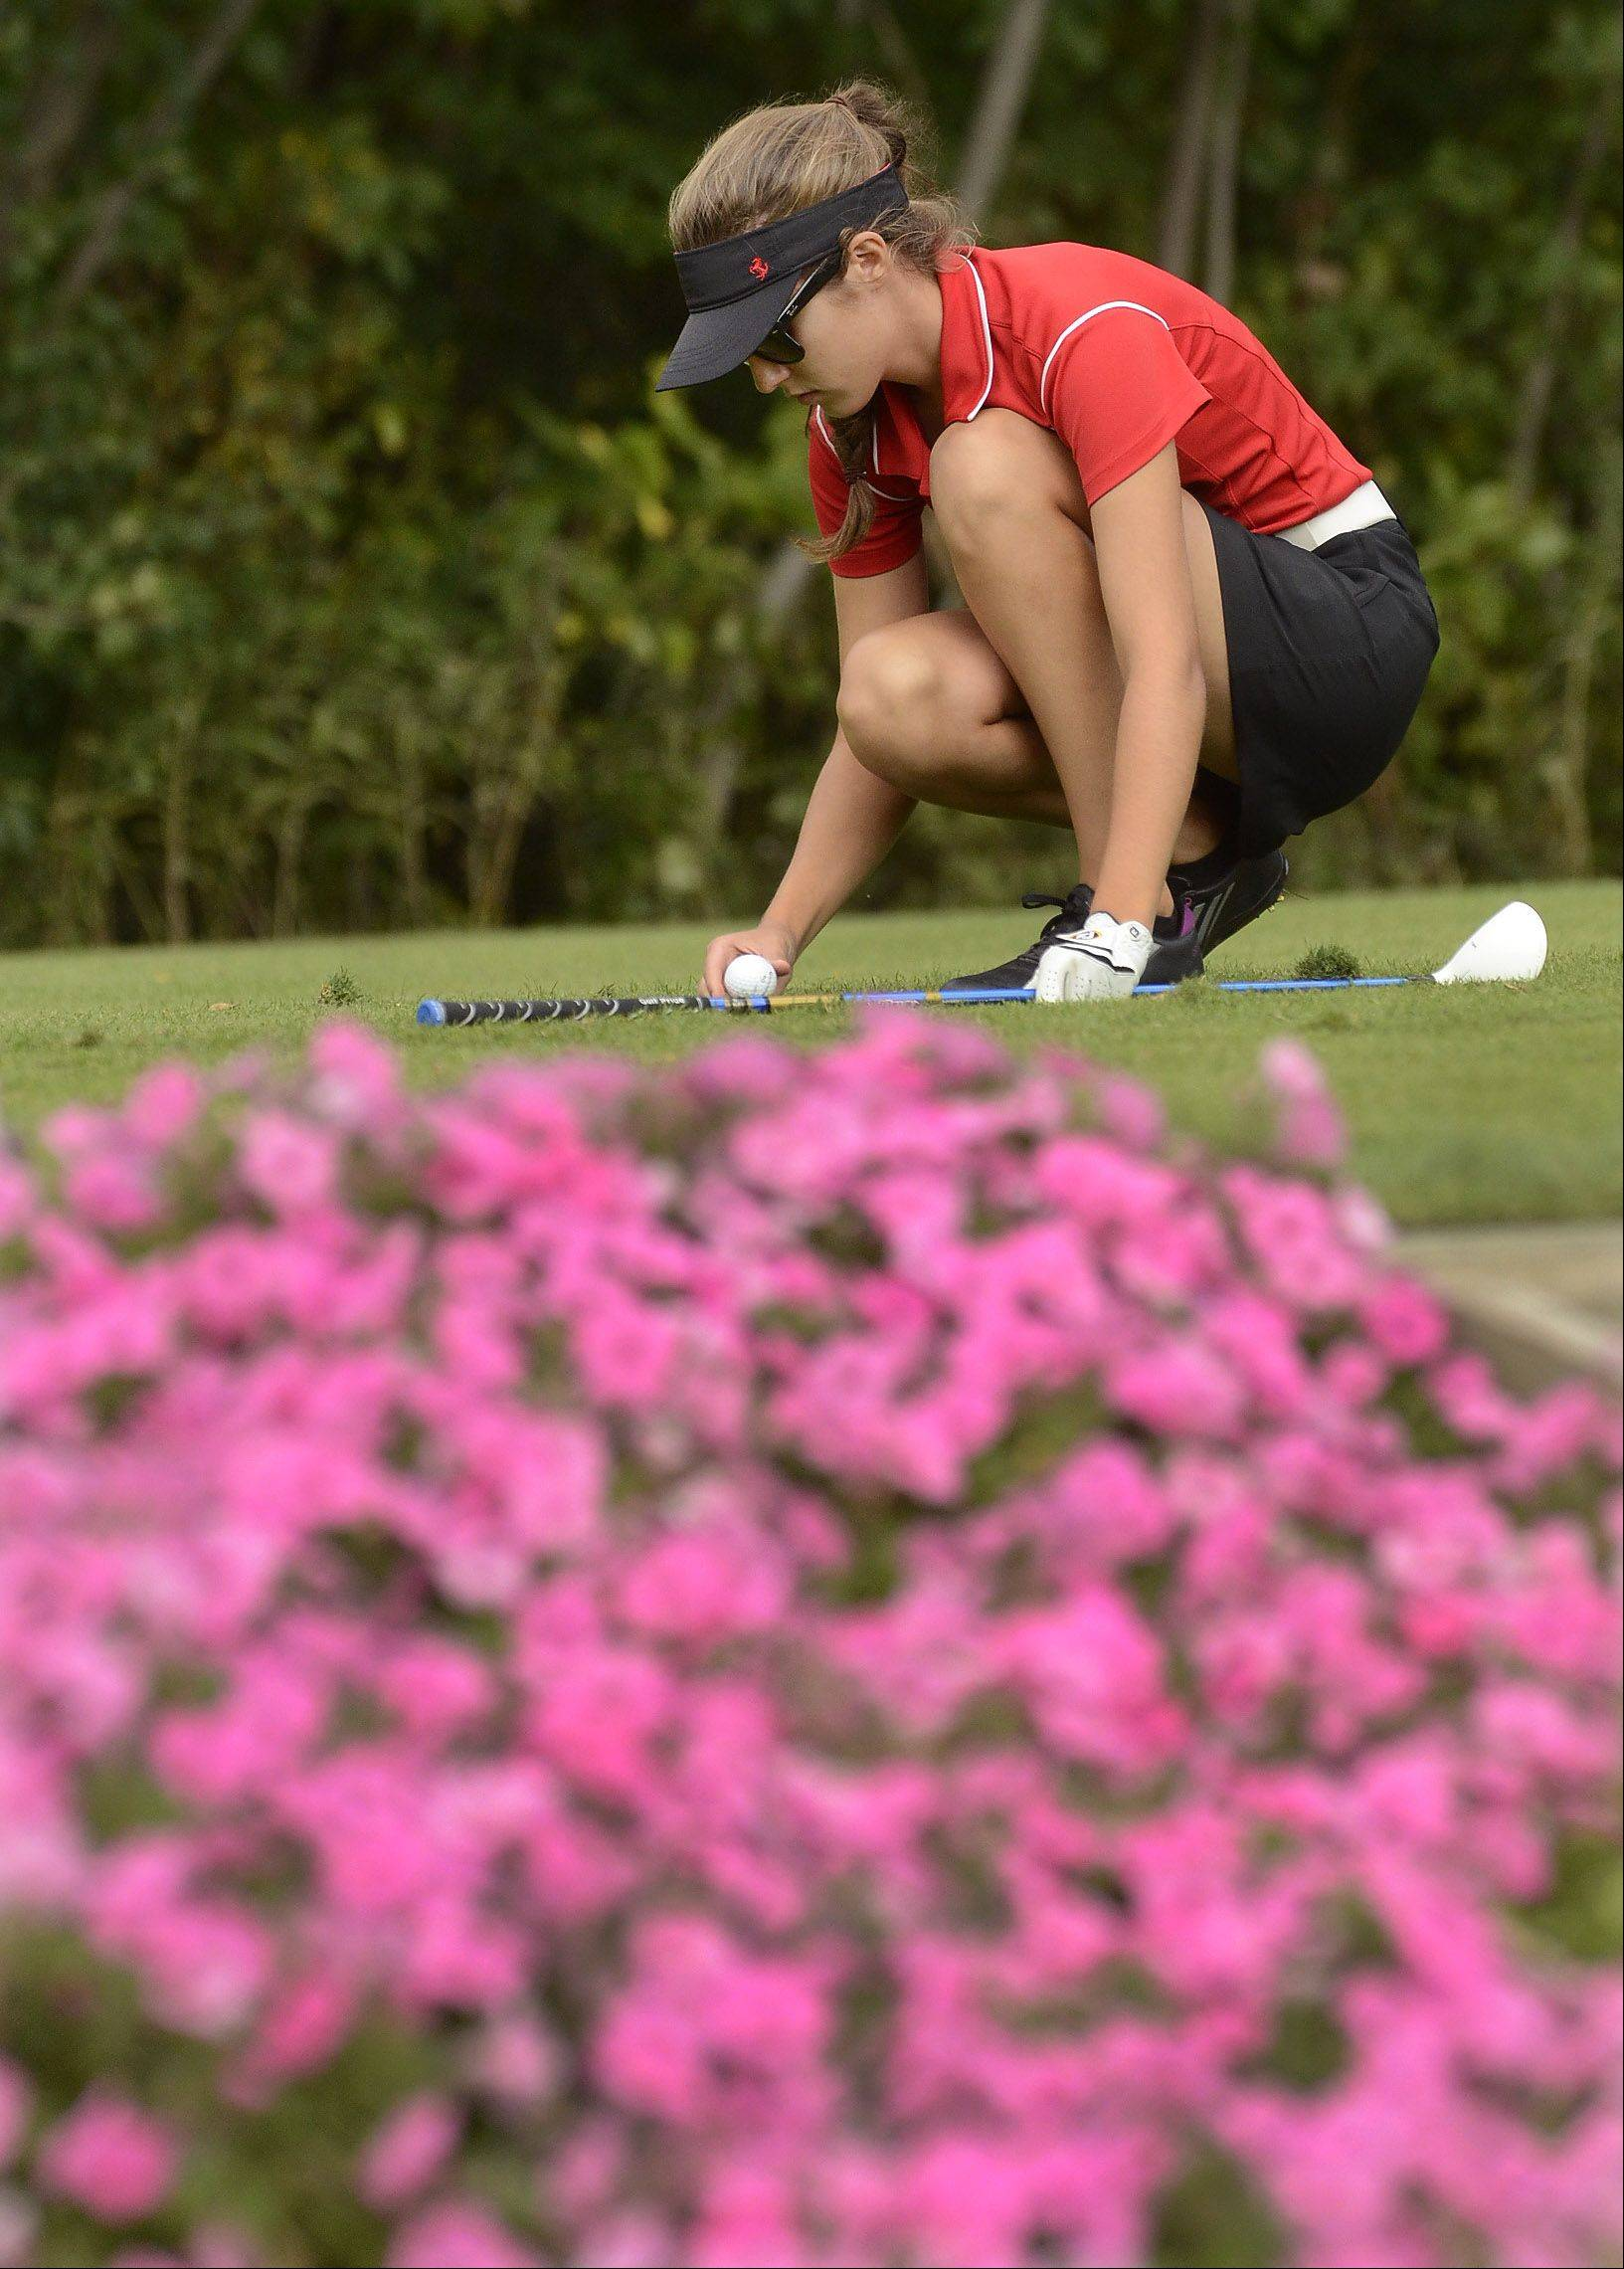 Courteney Fabbri of Mundelein tees up her ball on the par-3 13th hole during the North Suburban Conference girls golf meet at Deerpath Golf Course in Lake Forest.